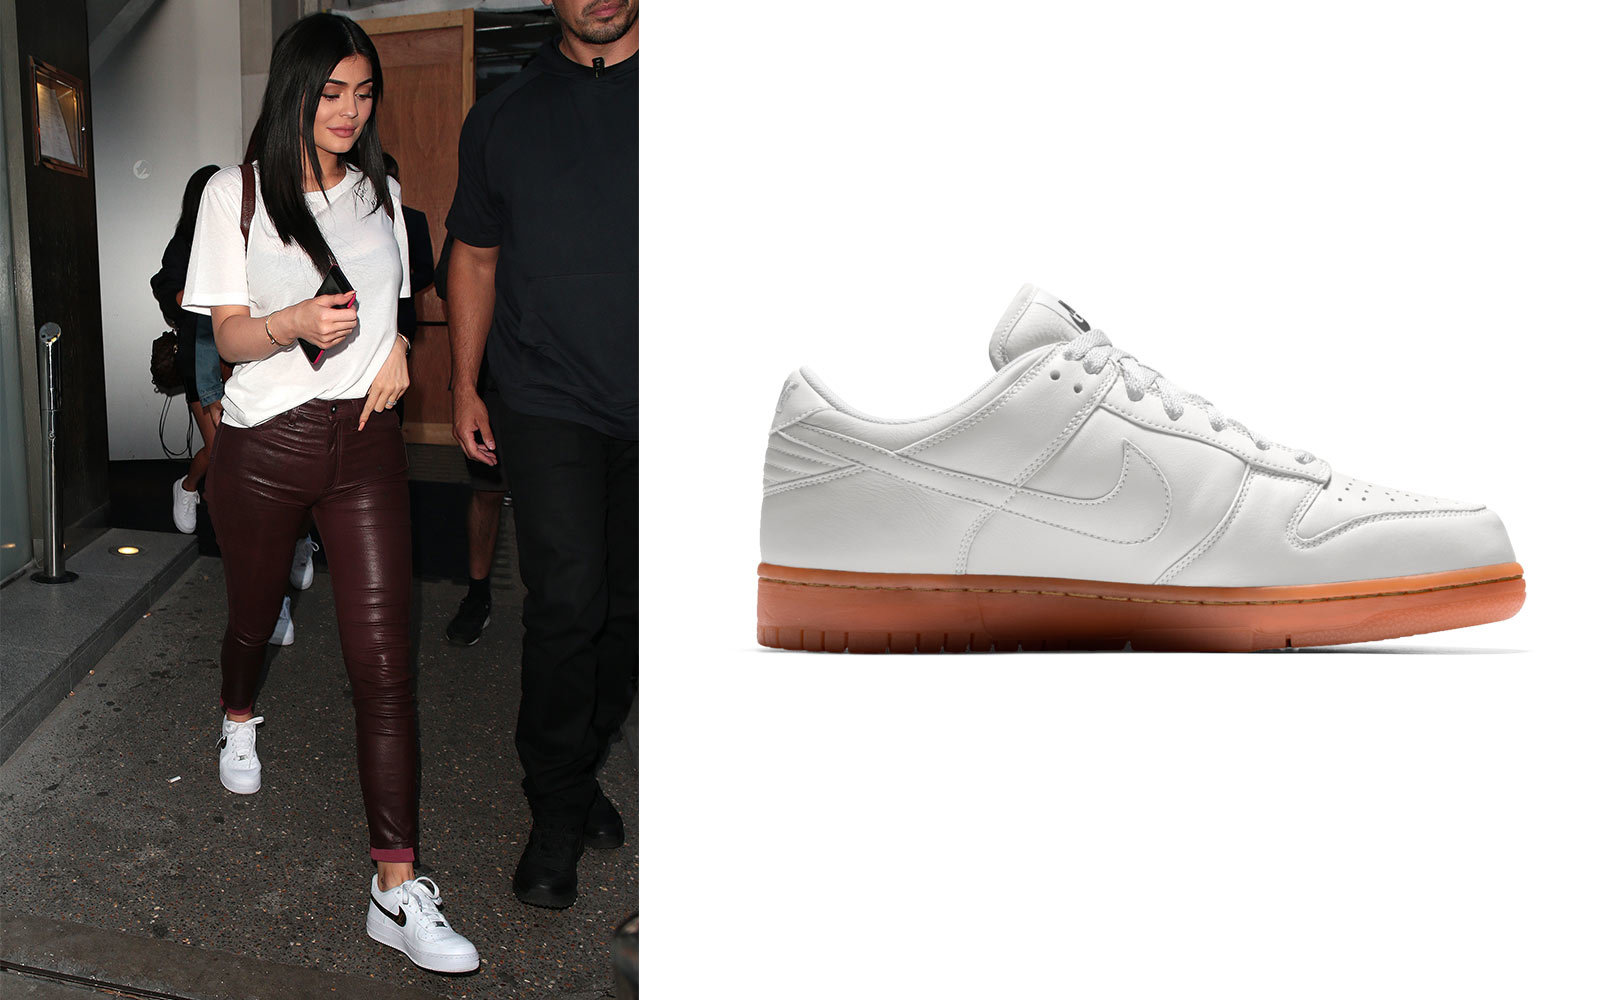 Kylie Jenner in Nike sneakers